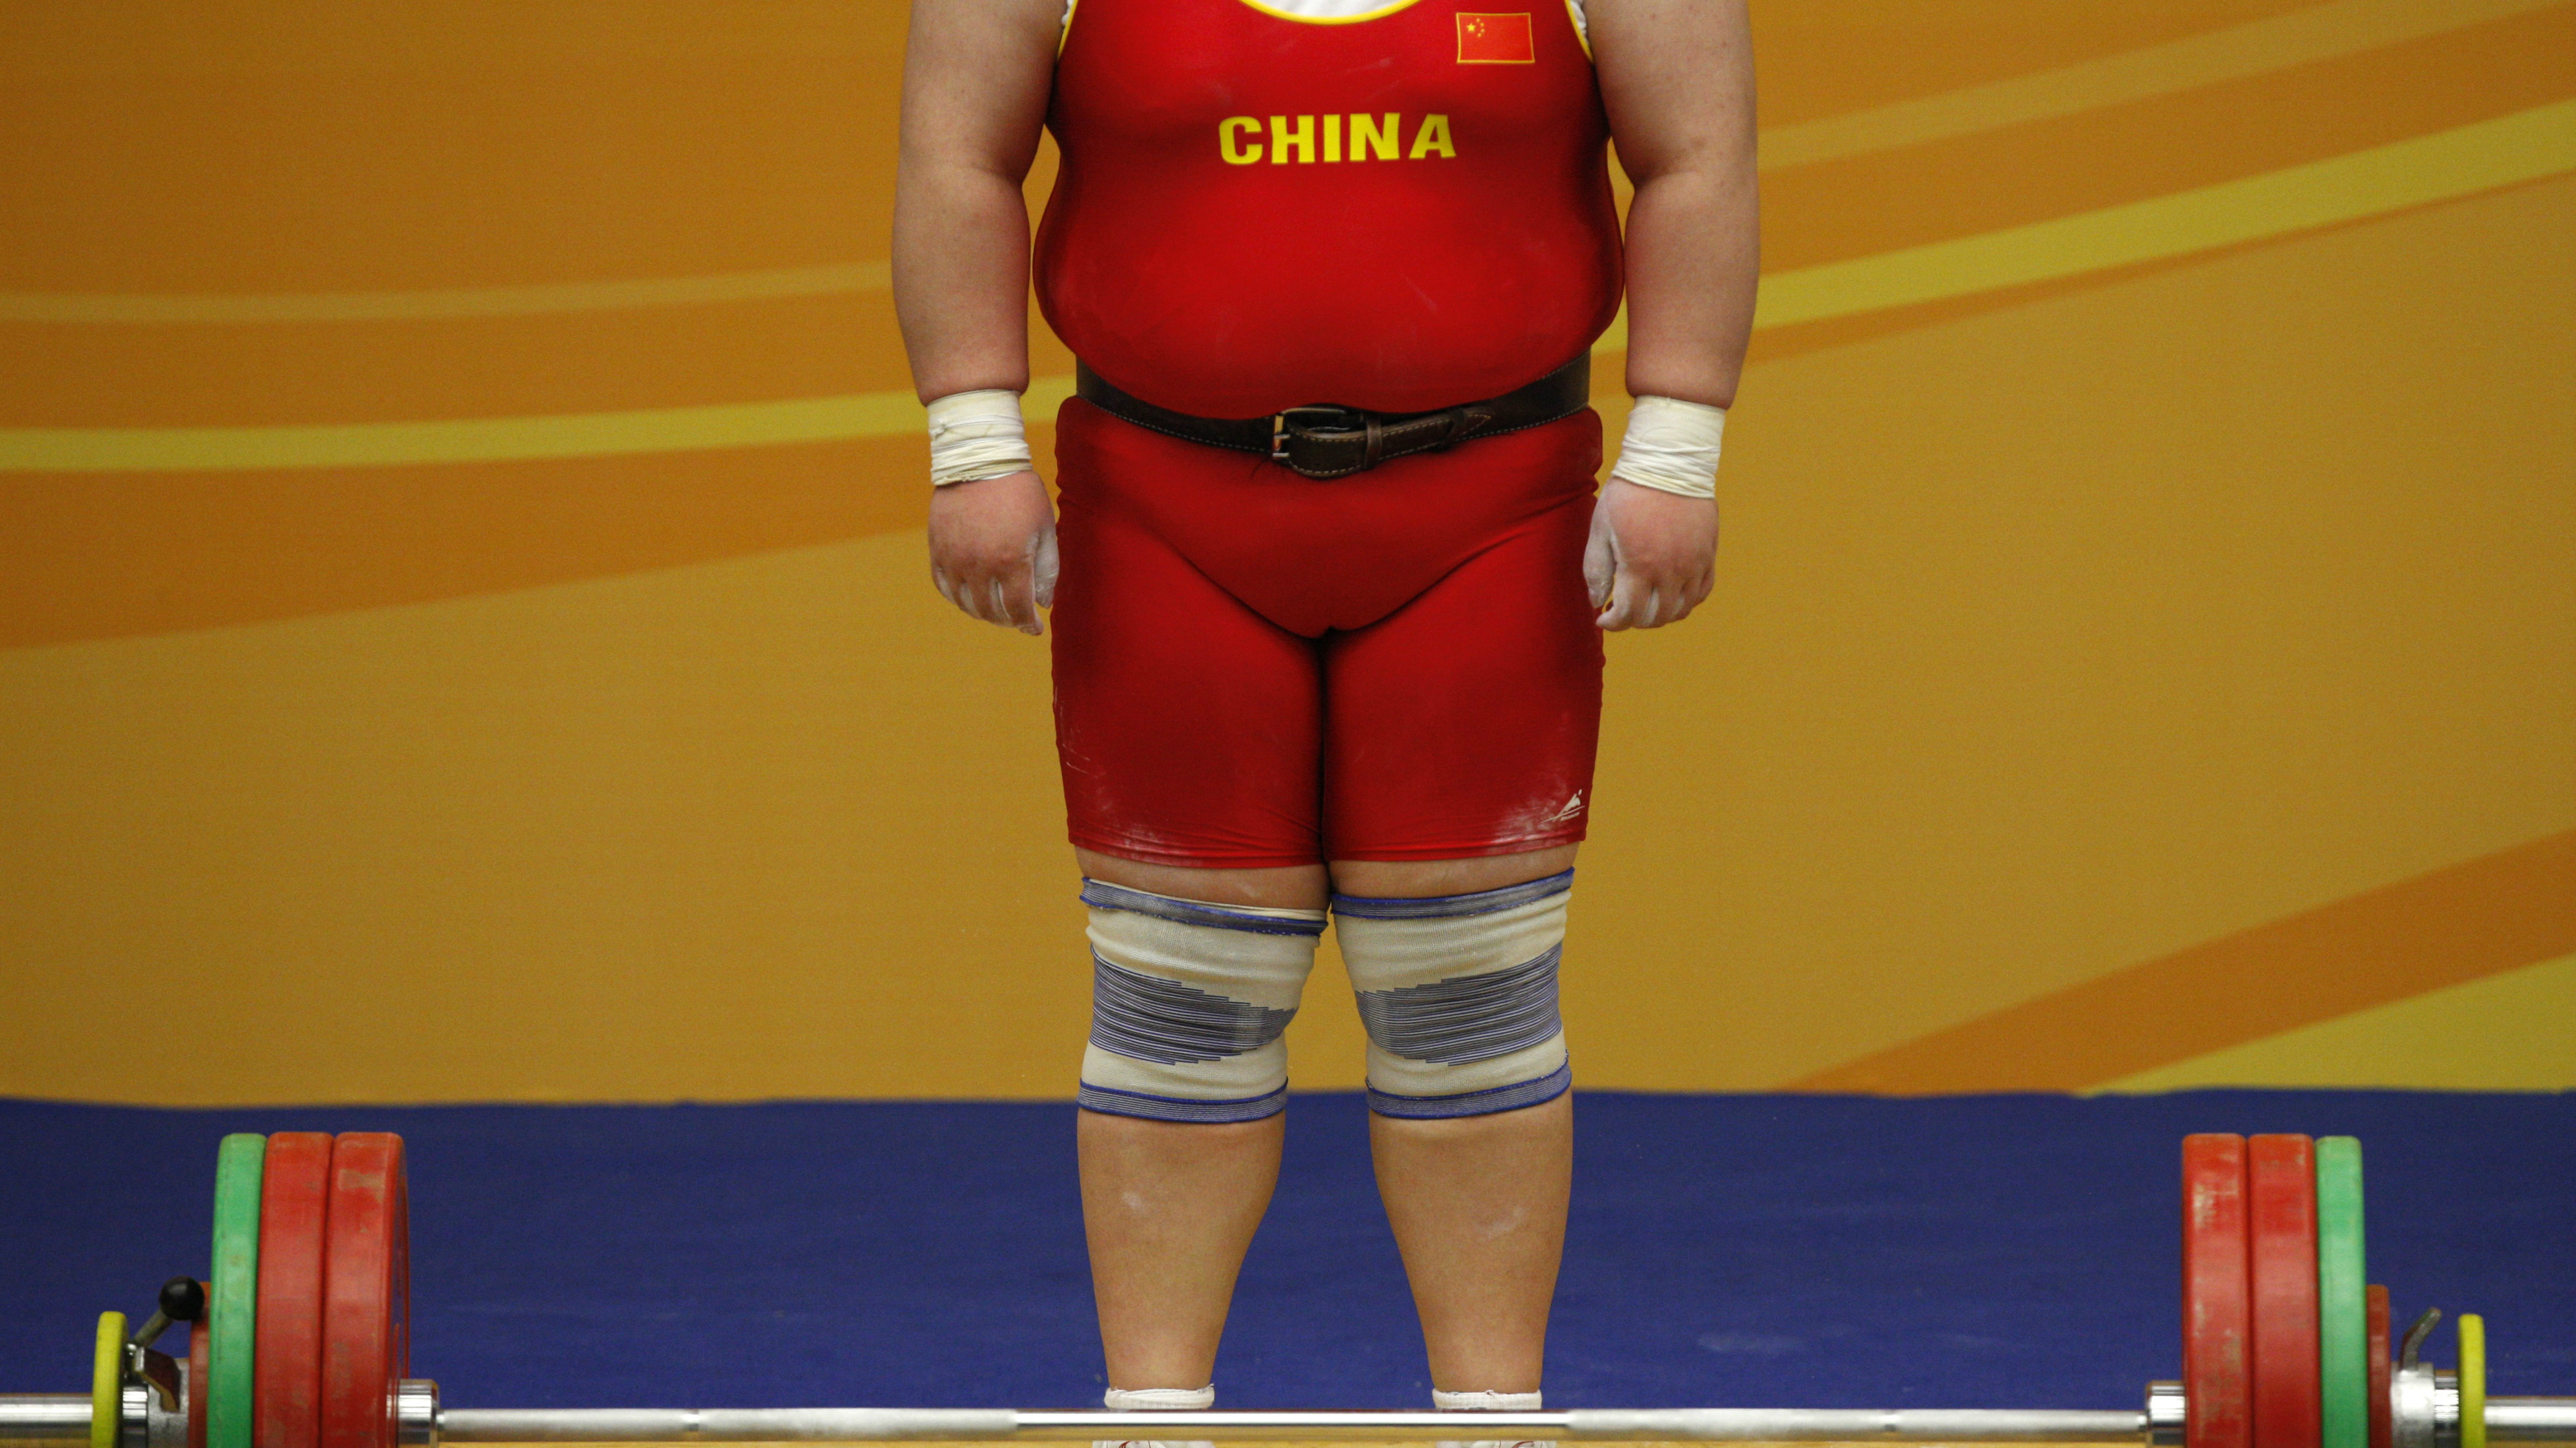 DATE IMPORTED:December 11, 2009China's Qi Xihui waits to compete during the clean and jerk session of the women's +75kg competition at the East Asian Games in Hong Kong December 11, 2009. REUTERS/Tyrone Siu